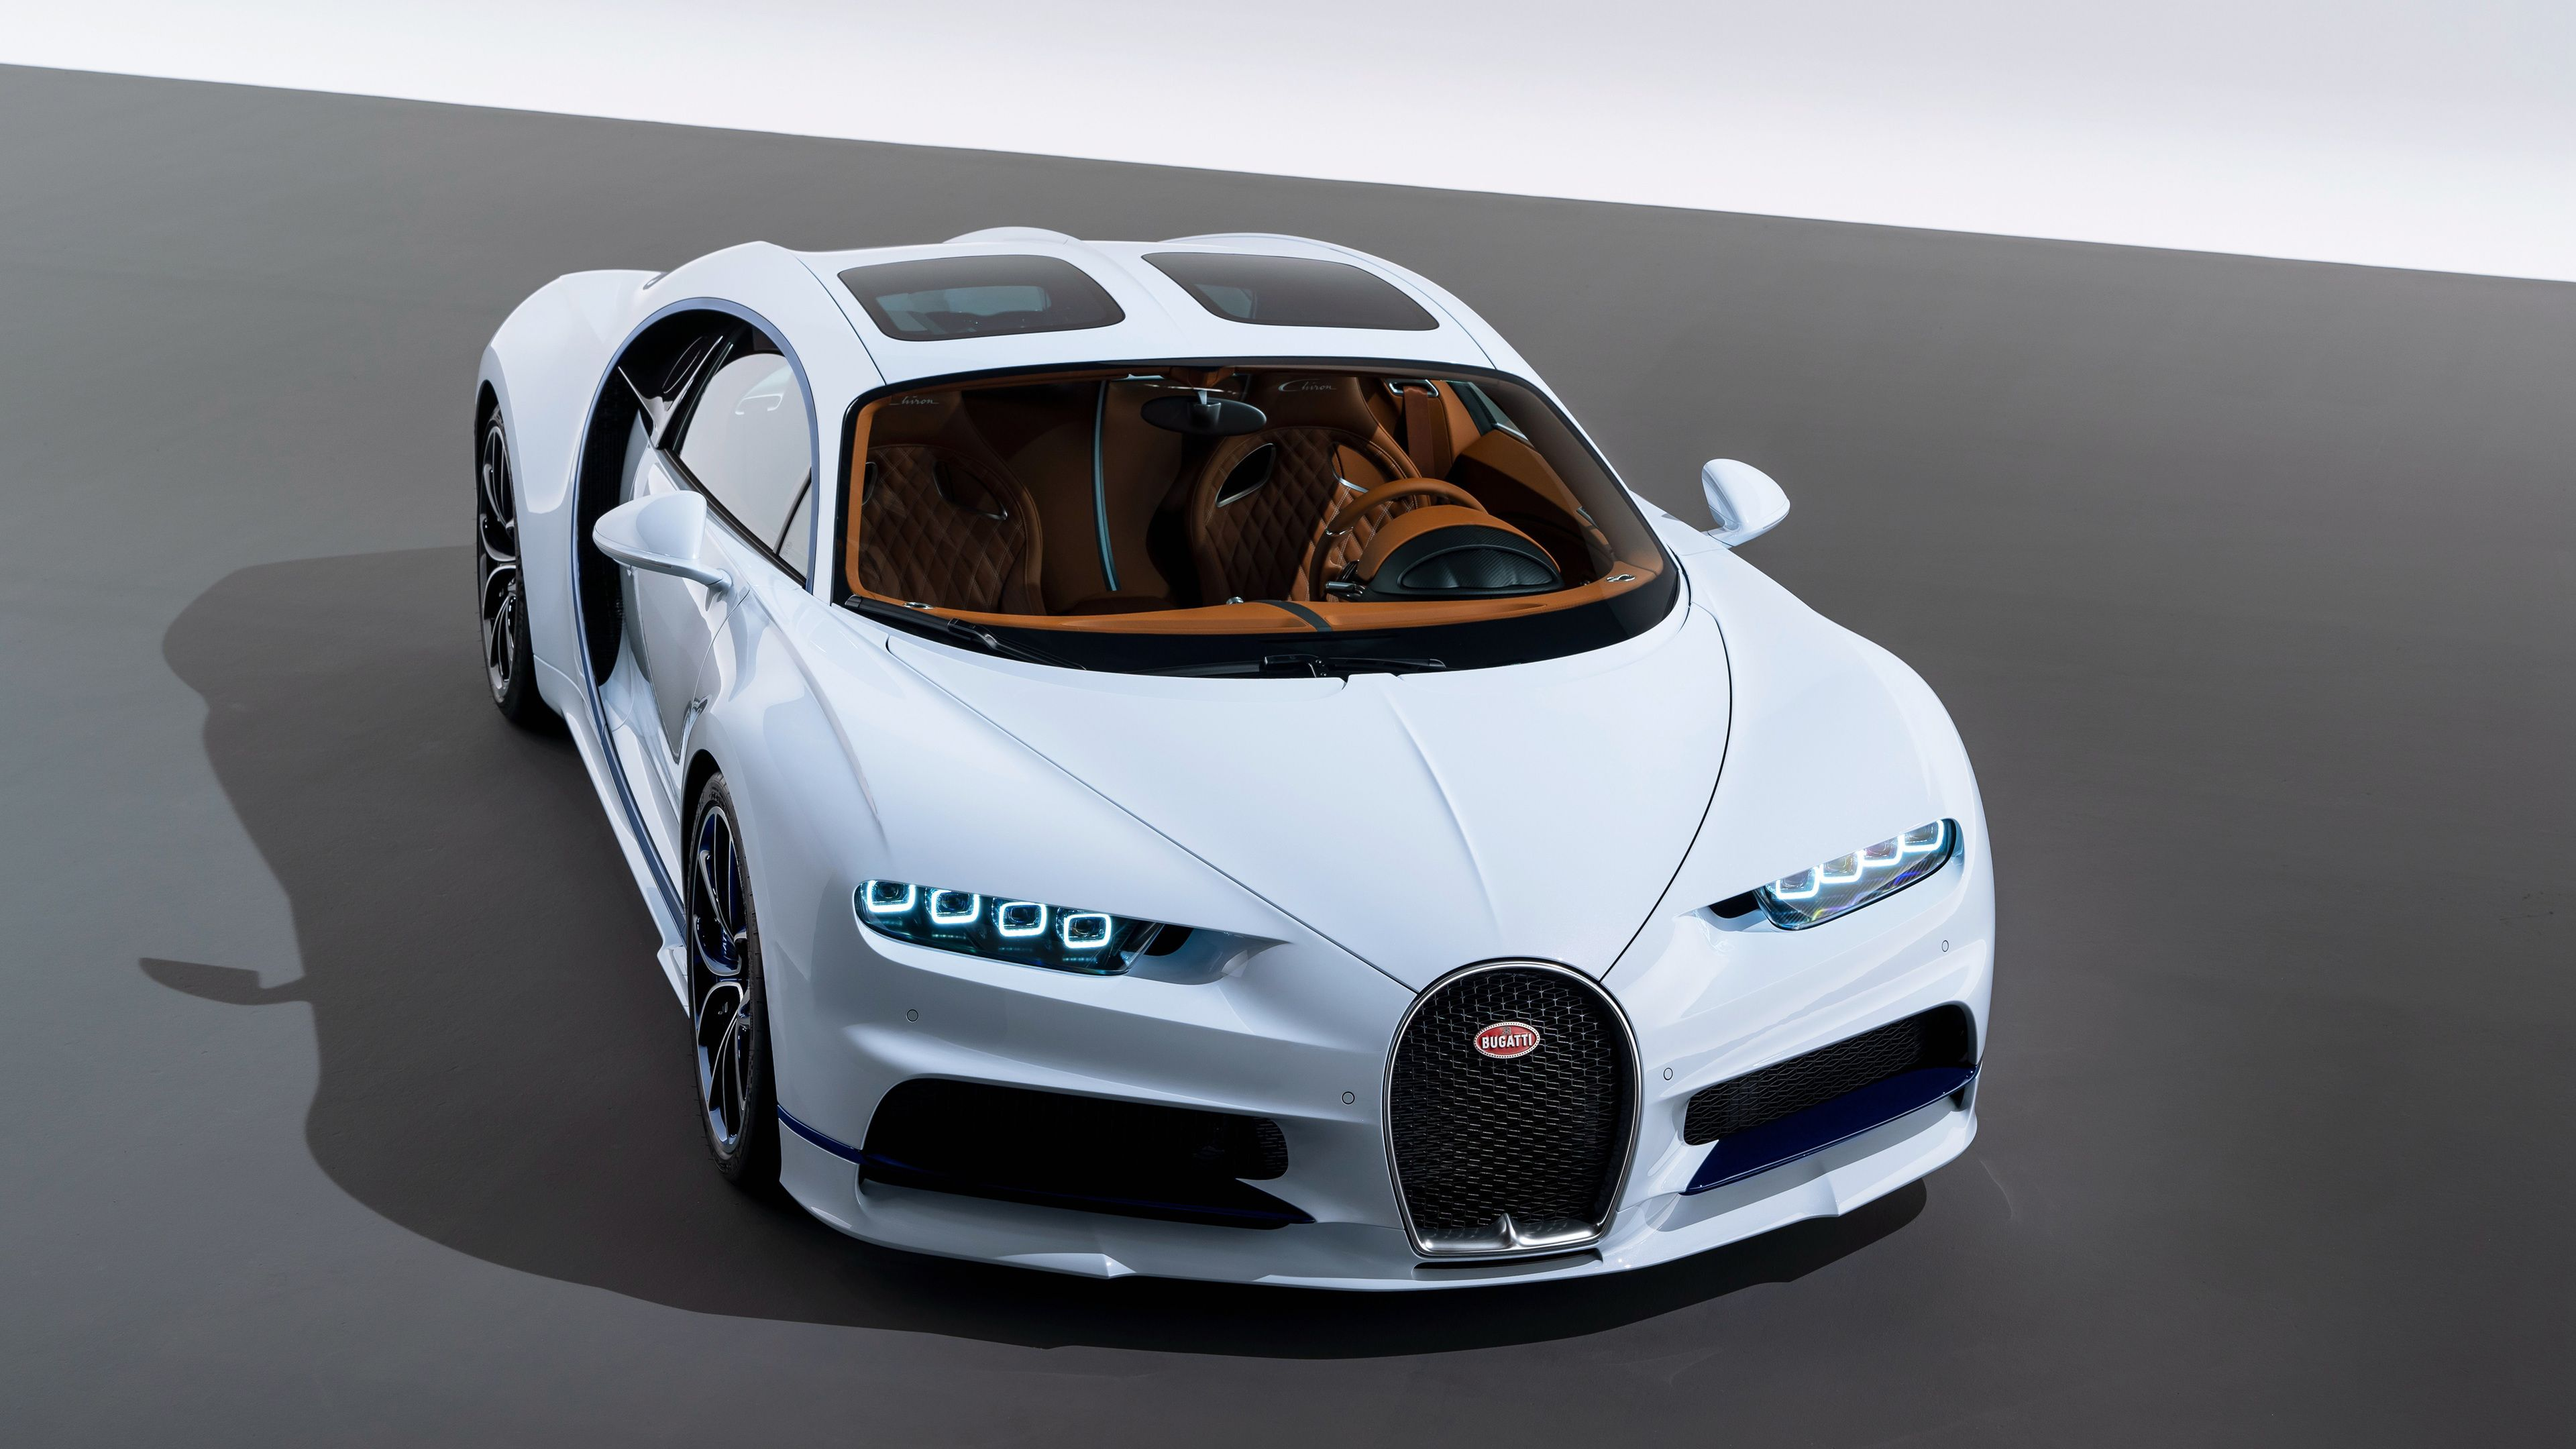 Wallpaper 4k Bugatti Chiron Sky View 2018 2018 Cars Wallpapers 4k